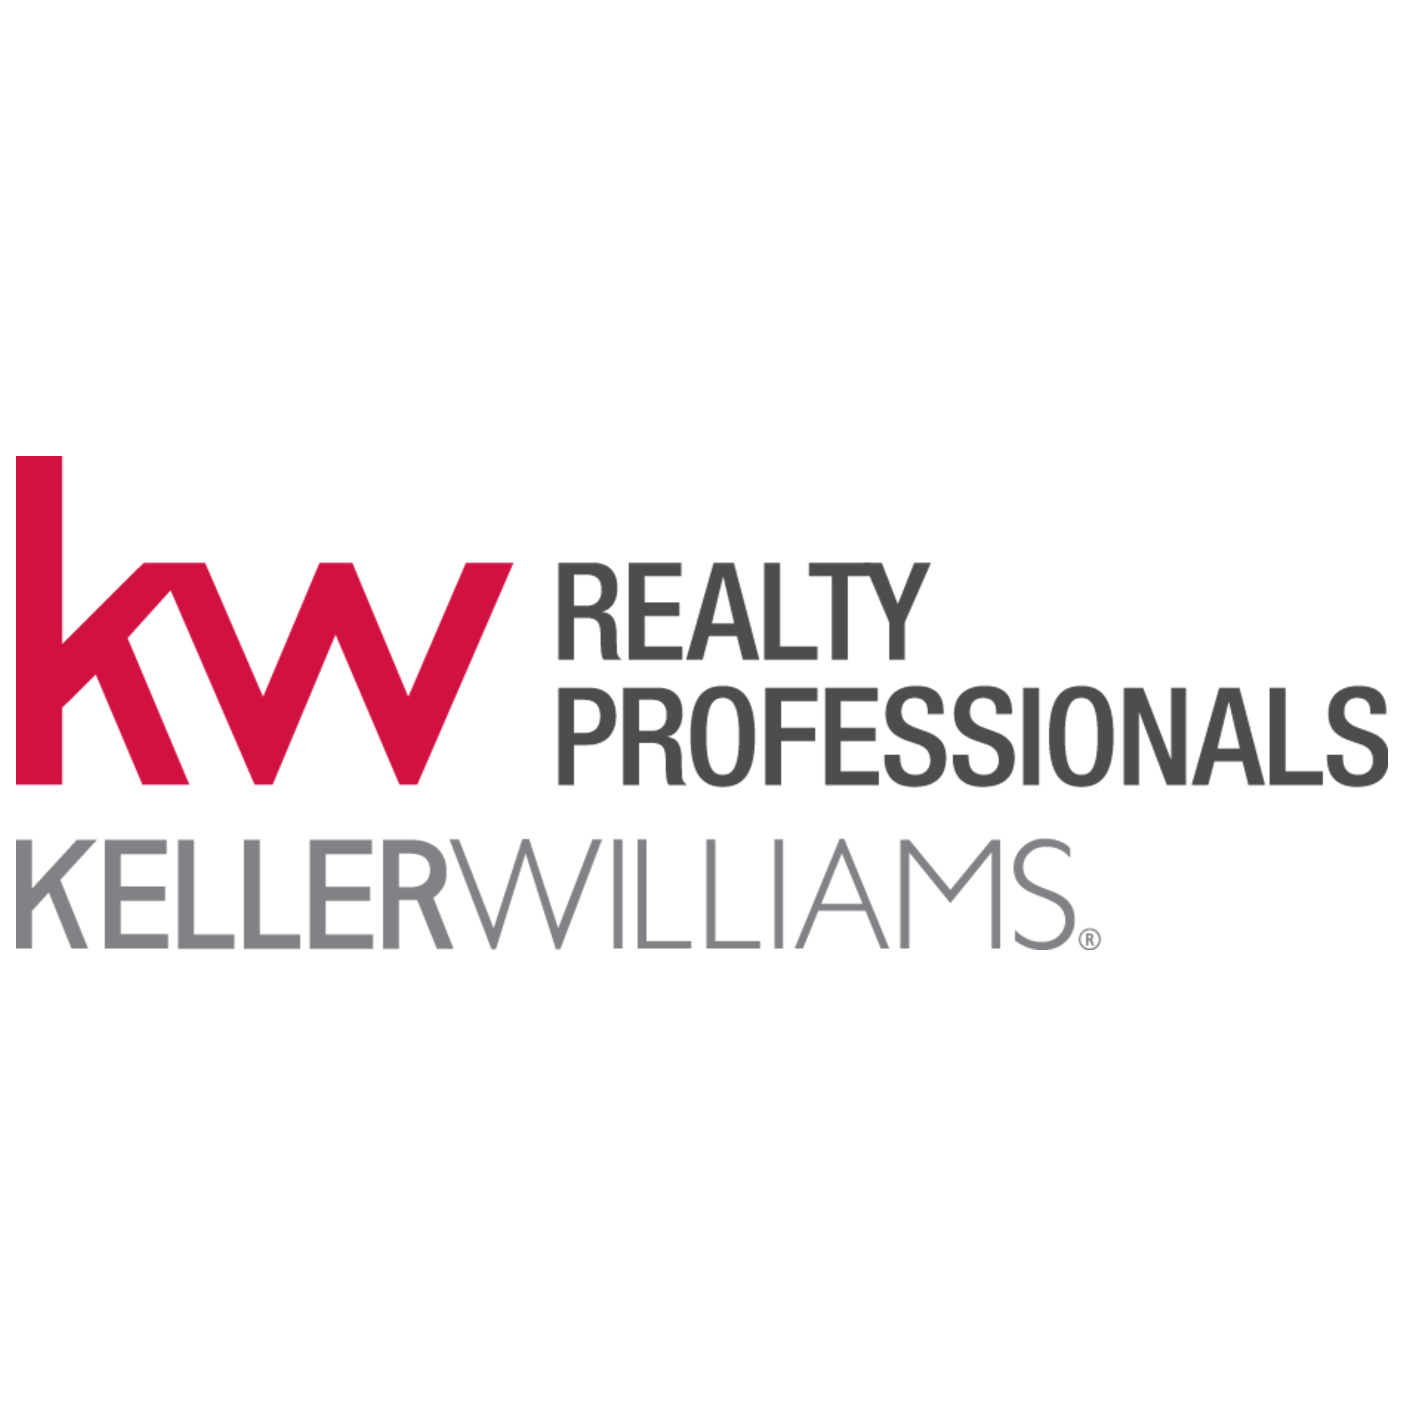 Gayle Macomber | Keller Williams Realty Professionals